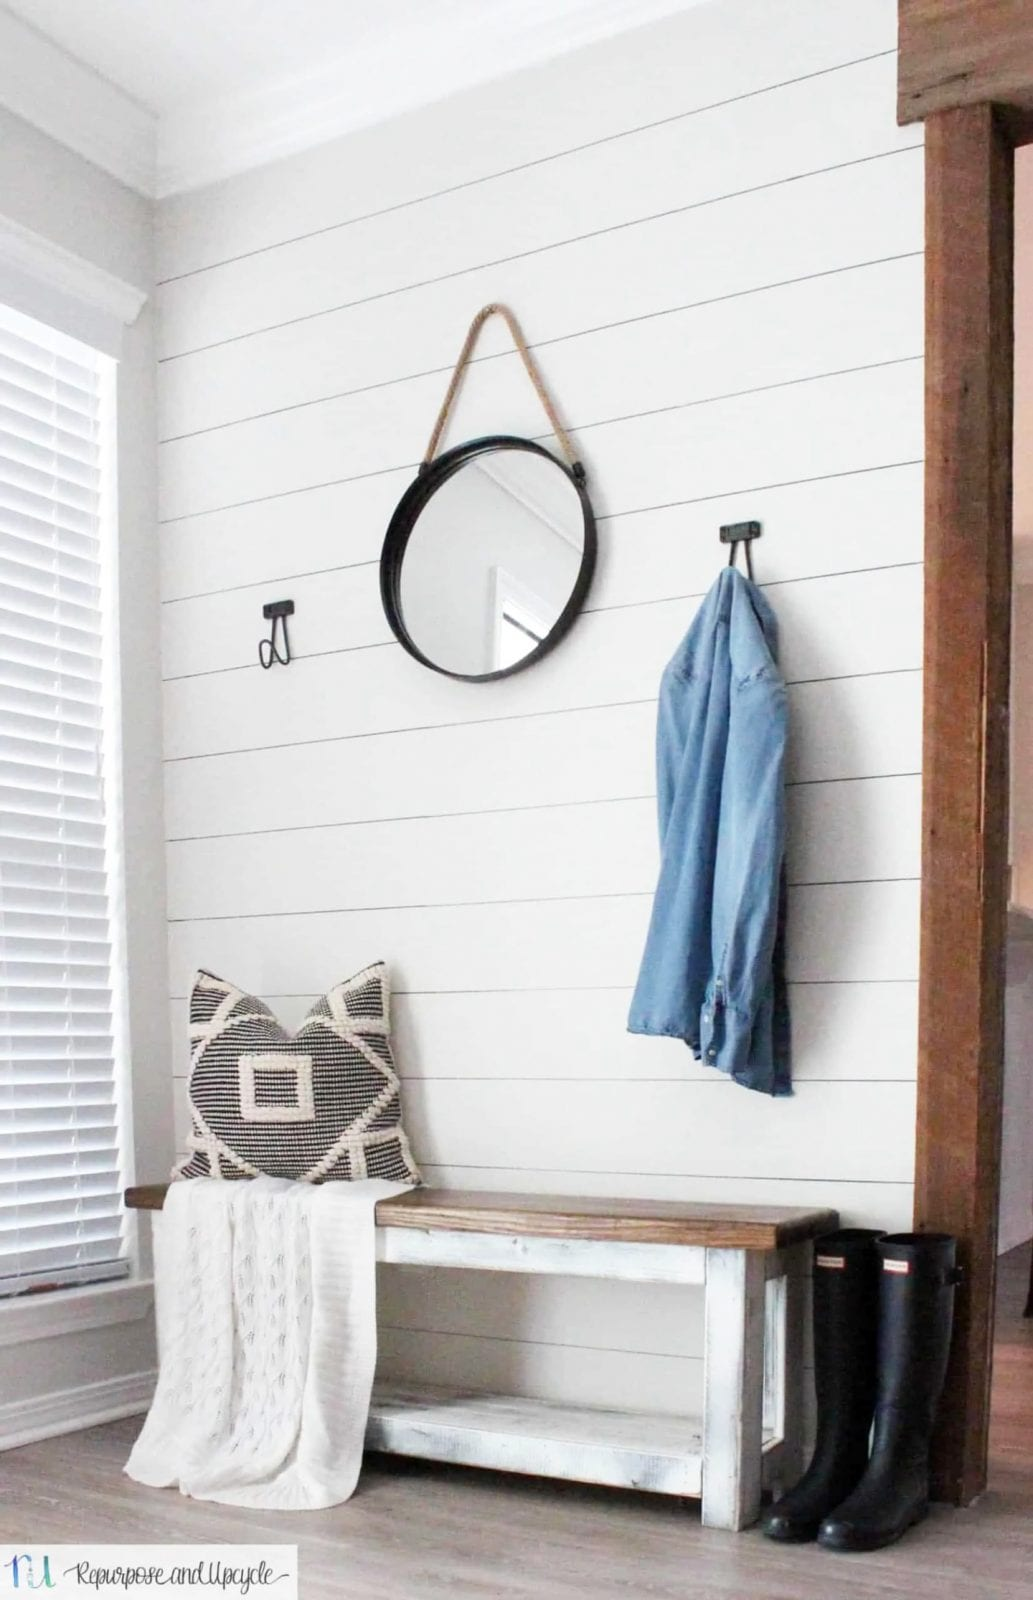 DIY sharpie home decor ideas - Create this faux shiplap wall with a sharpie and a ruler!